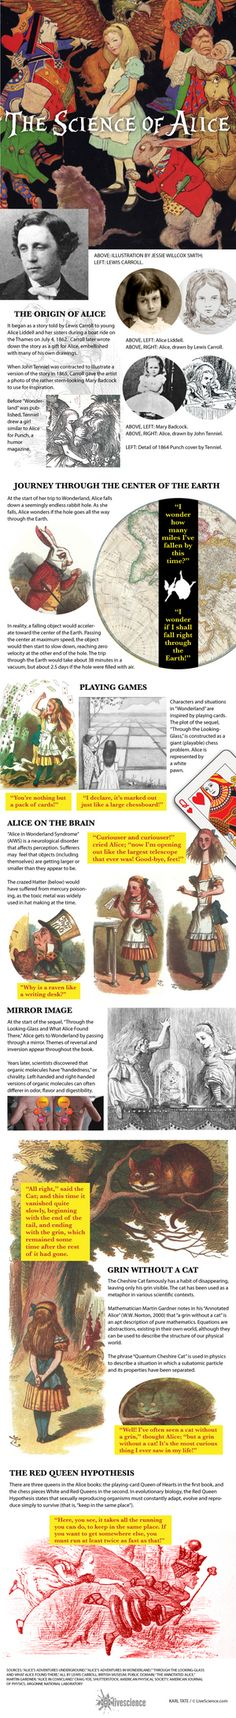 Scientists and mathematicians have always loved many of the metaphors in Lewis Carroll's books.